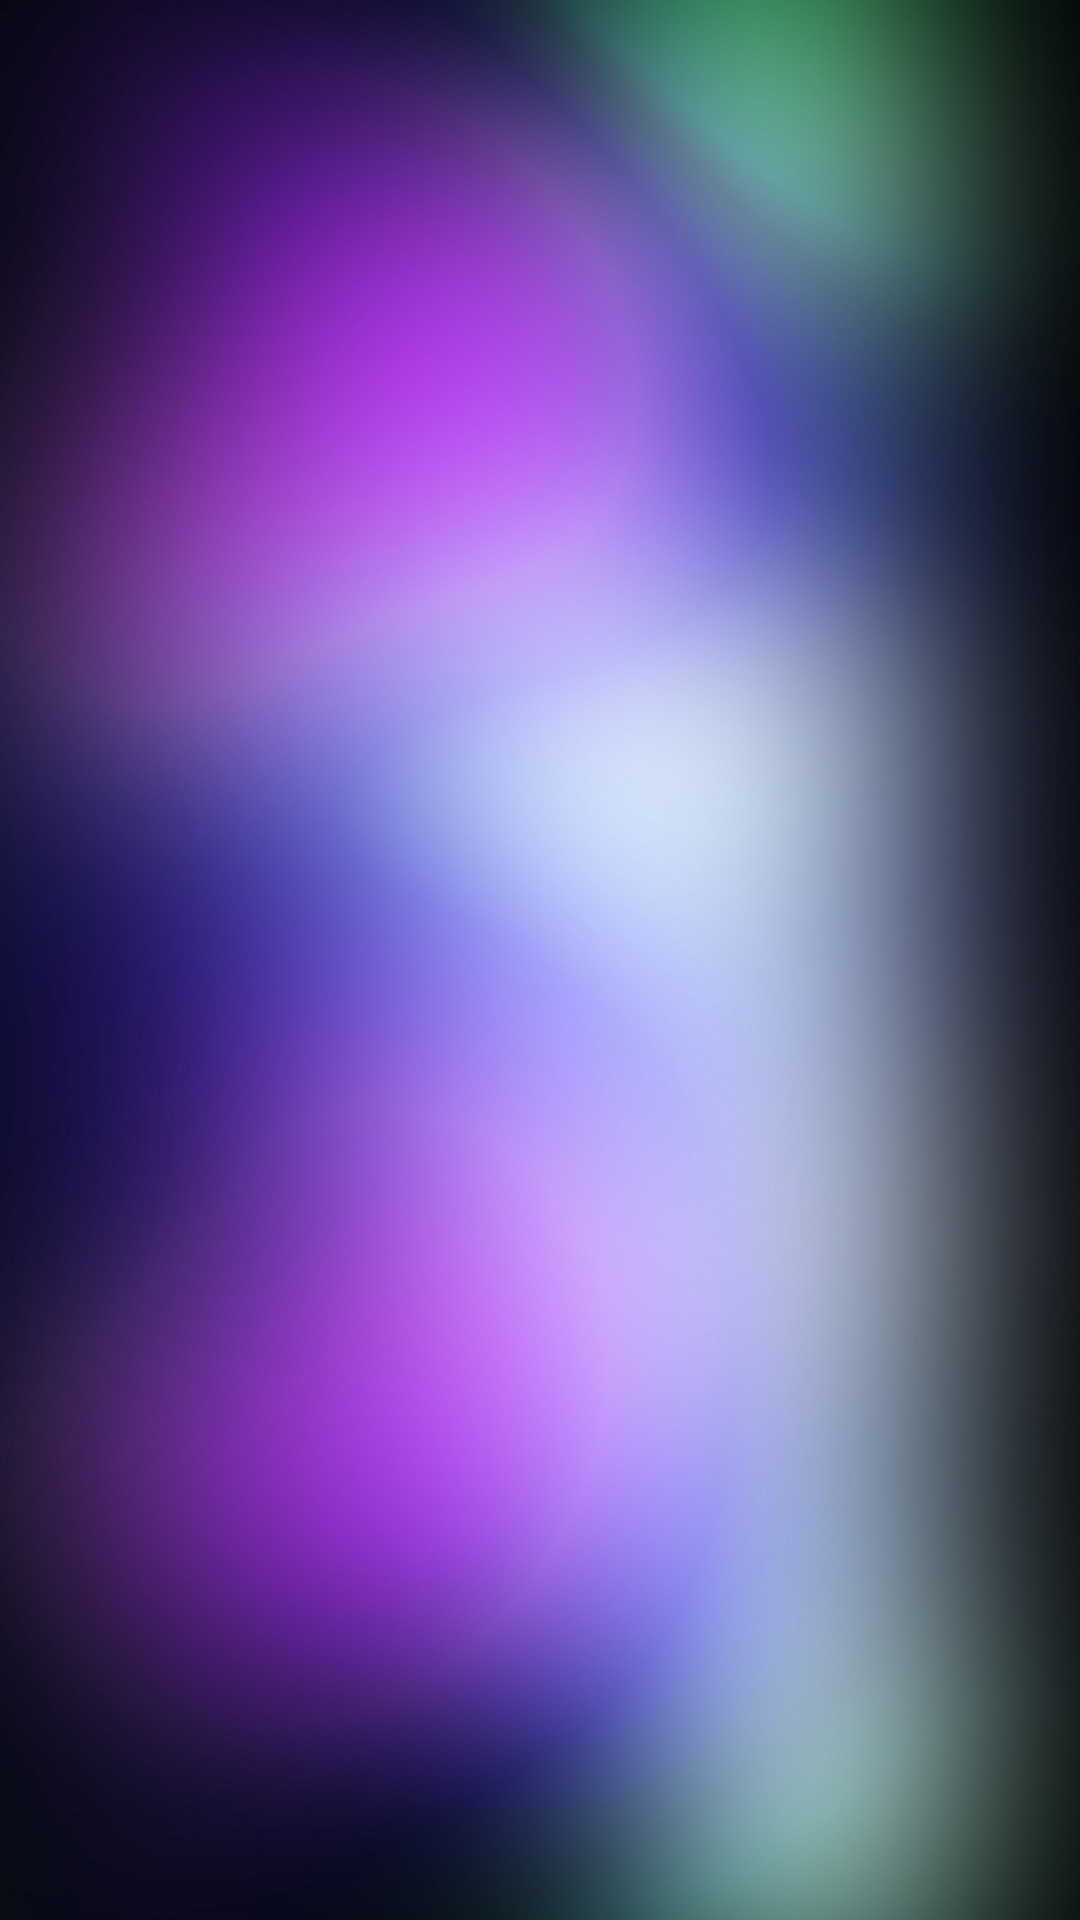 The 1 #nexus5 #Color #Wallpaper I just shared!